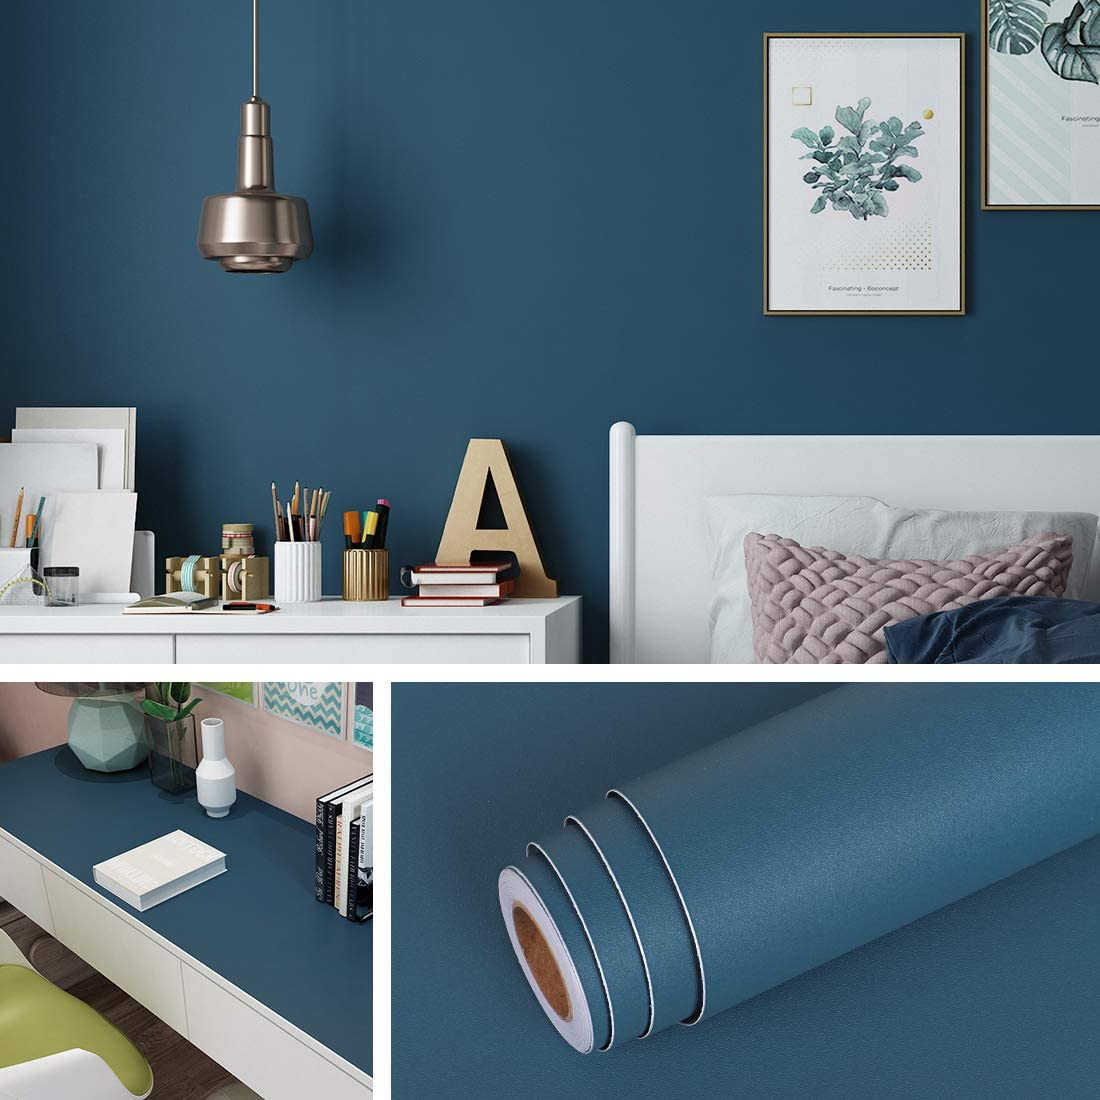 Livelynine free 15.8 x New sales 394 Inch Blue Removab Wallpaper and Stick Peel